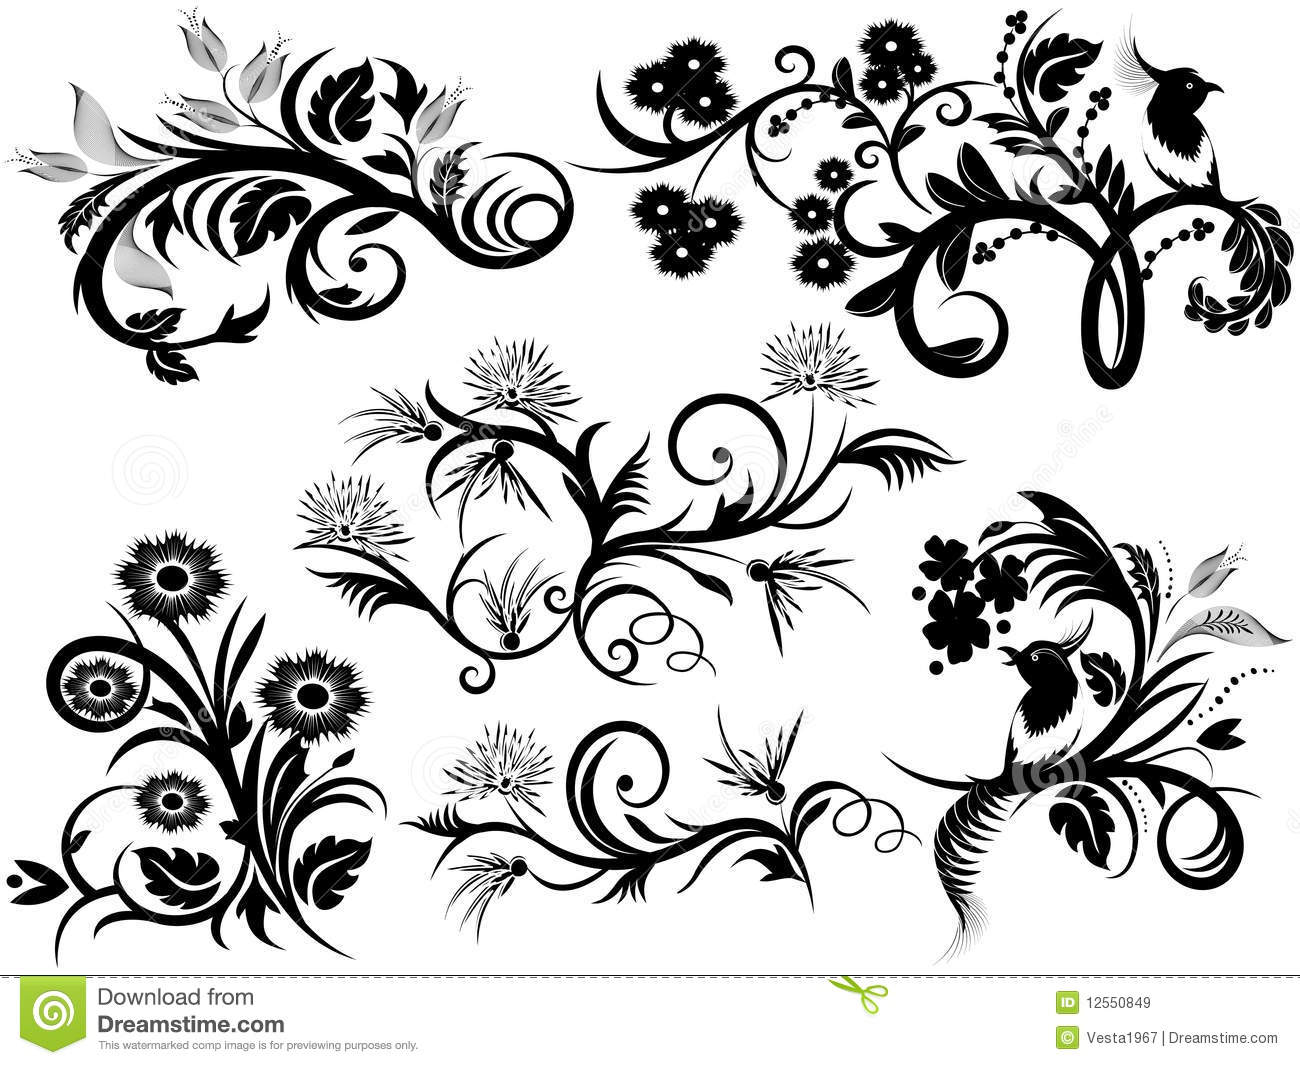 2563 V7 moreover Beach Scene Clipart Black And White together with Stock Illustration Graphic Seashells Pattern Collection Drawn Line Art Style White Background Ocean Seamless Vector Coloring Page Design Image69180827 besides White 3D Snowflake   Clipart Image likewise Motif Batik Vector Wallpapers Aug. on beach video background